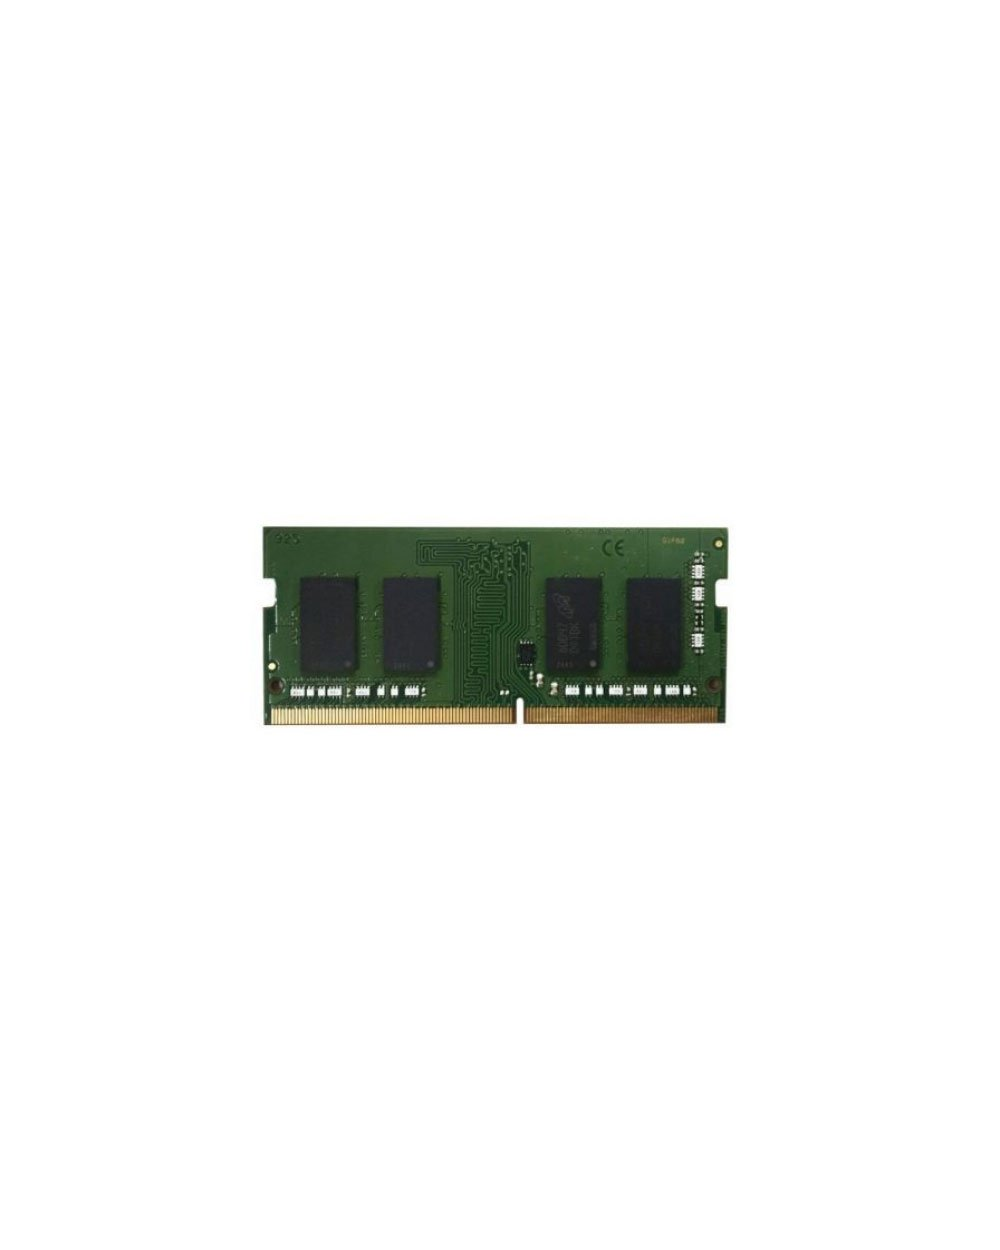 QNAP 8GB DDR4 RAM, 2133 MHz, SO-DIMM, 260 pin